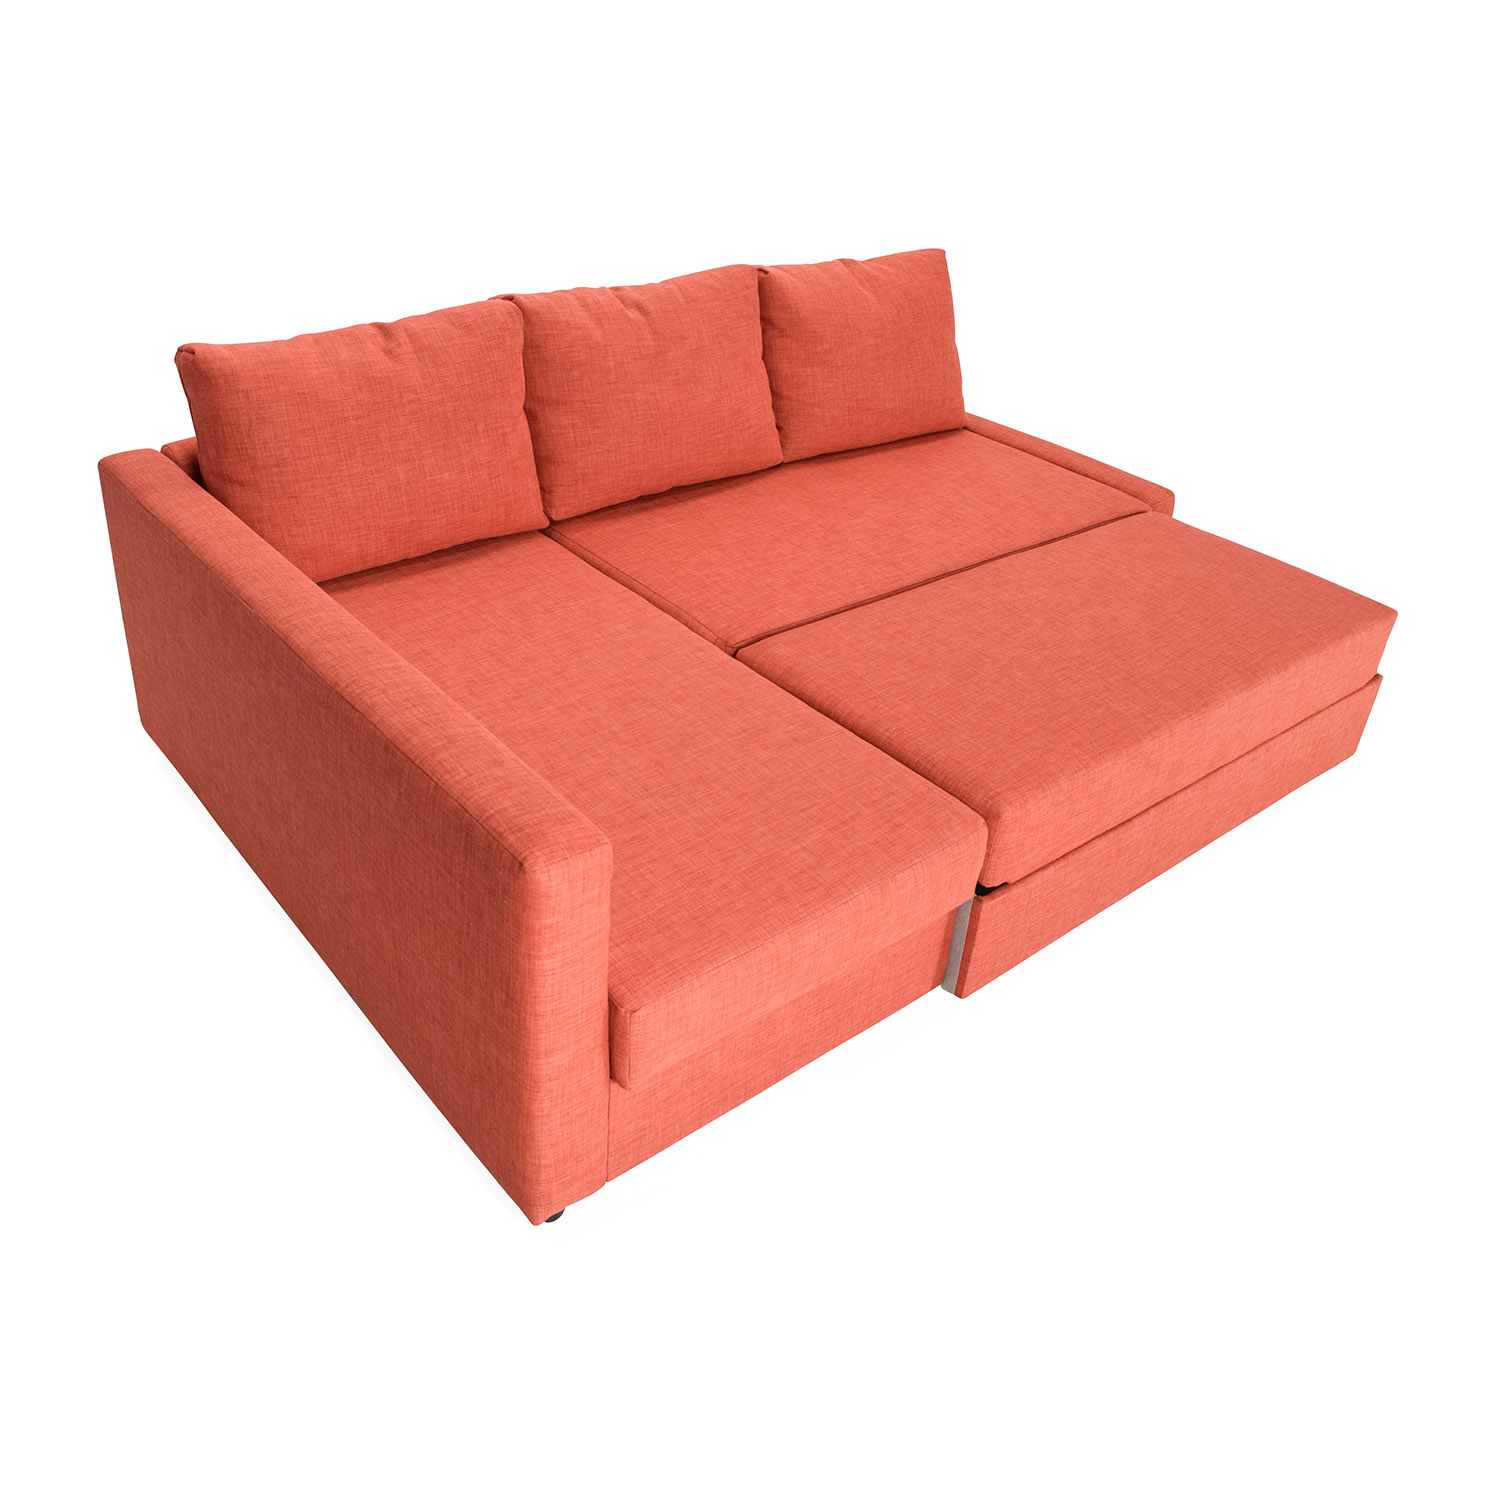 IKEA FRIHETEN Sofa Bed With Chaise Orange